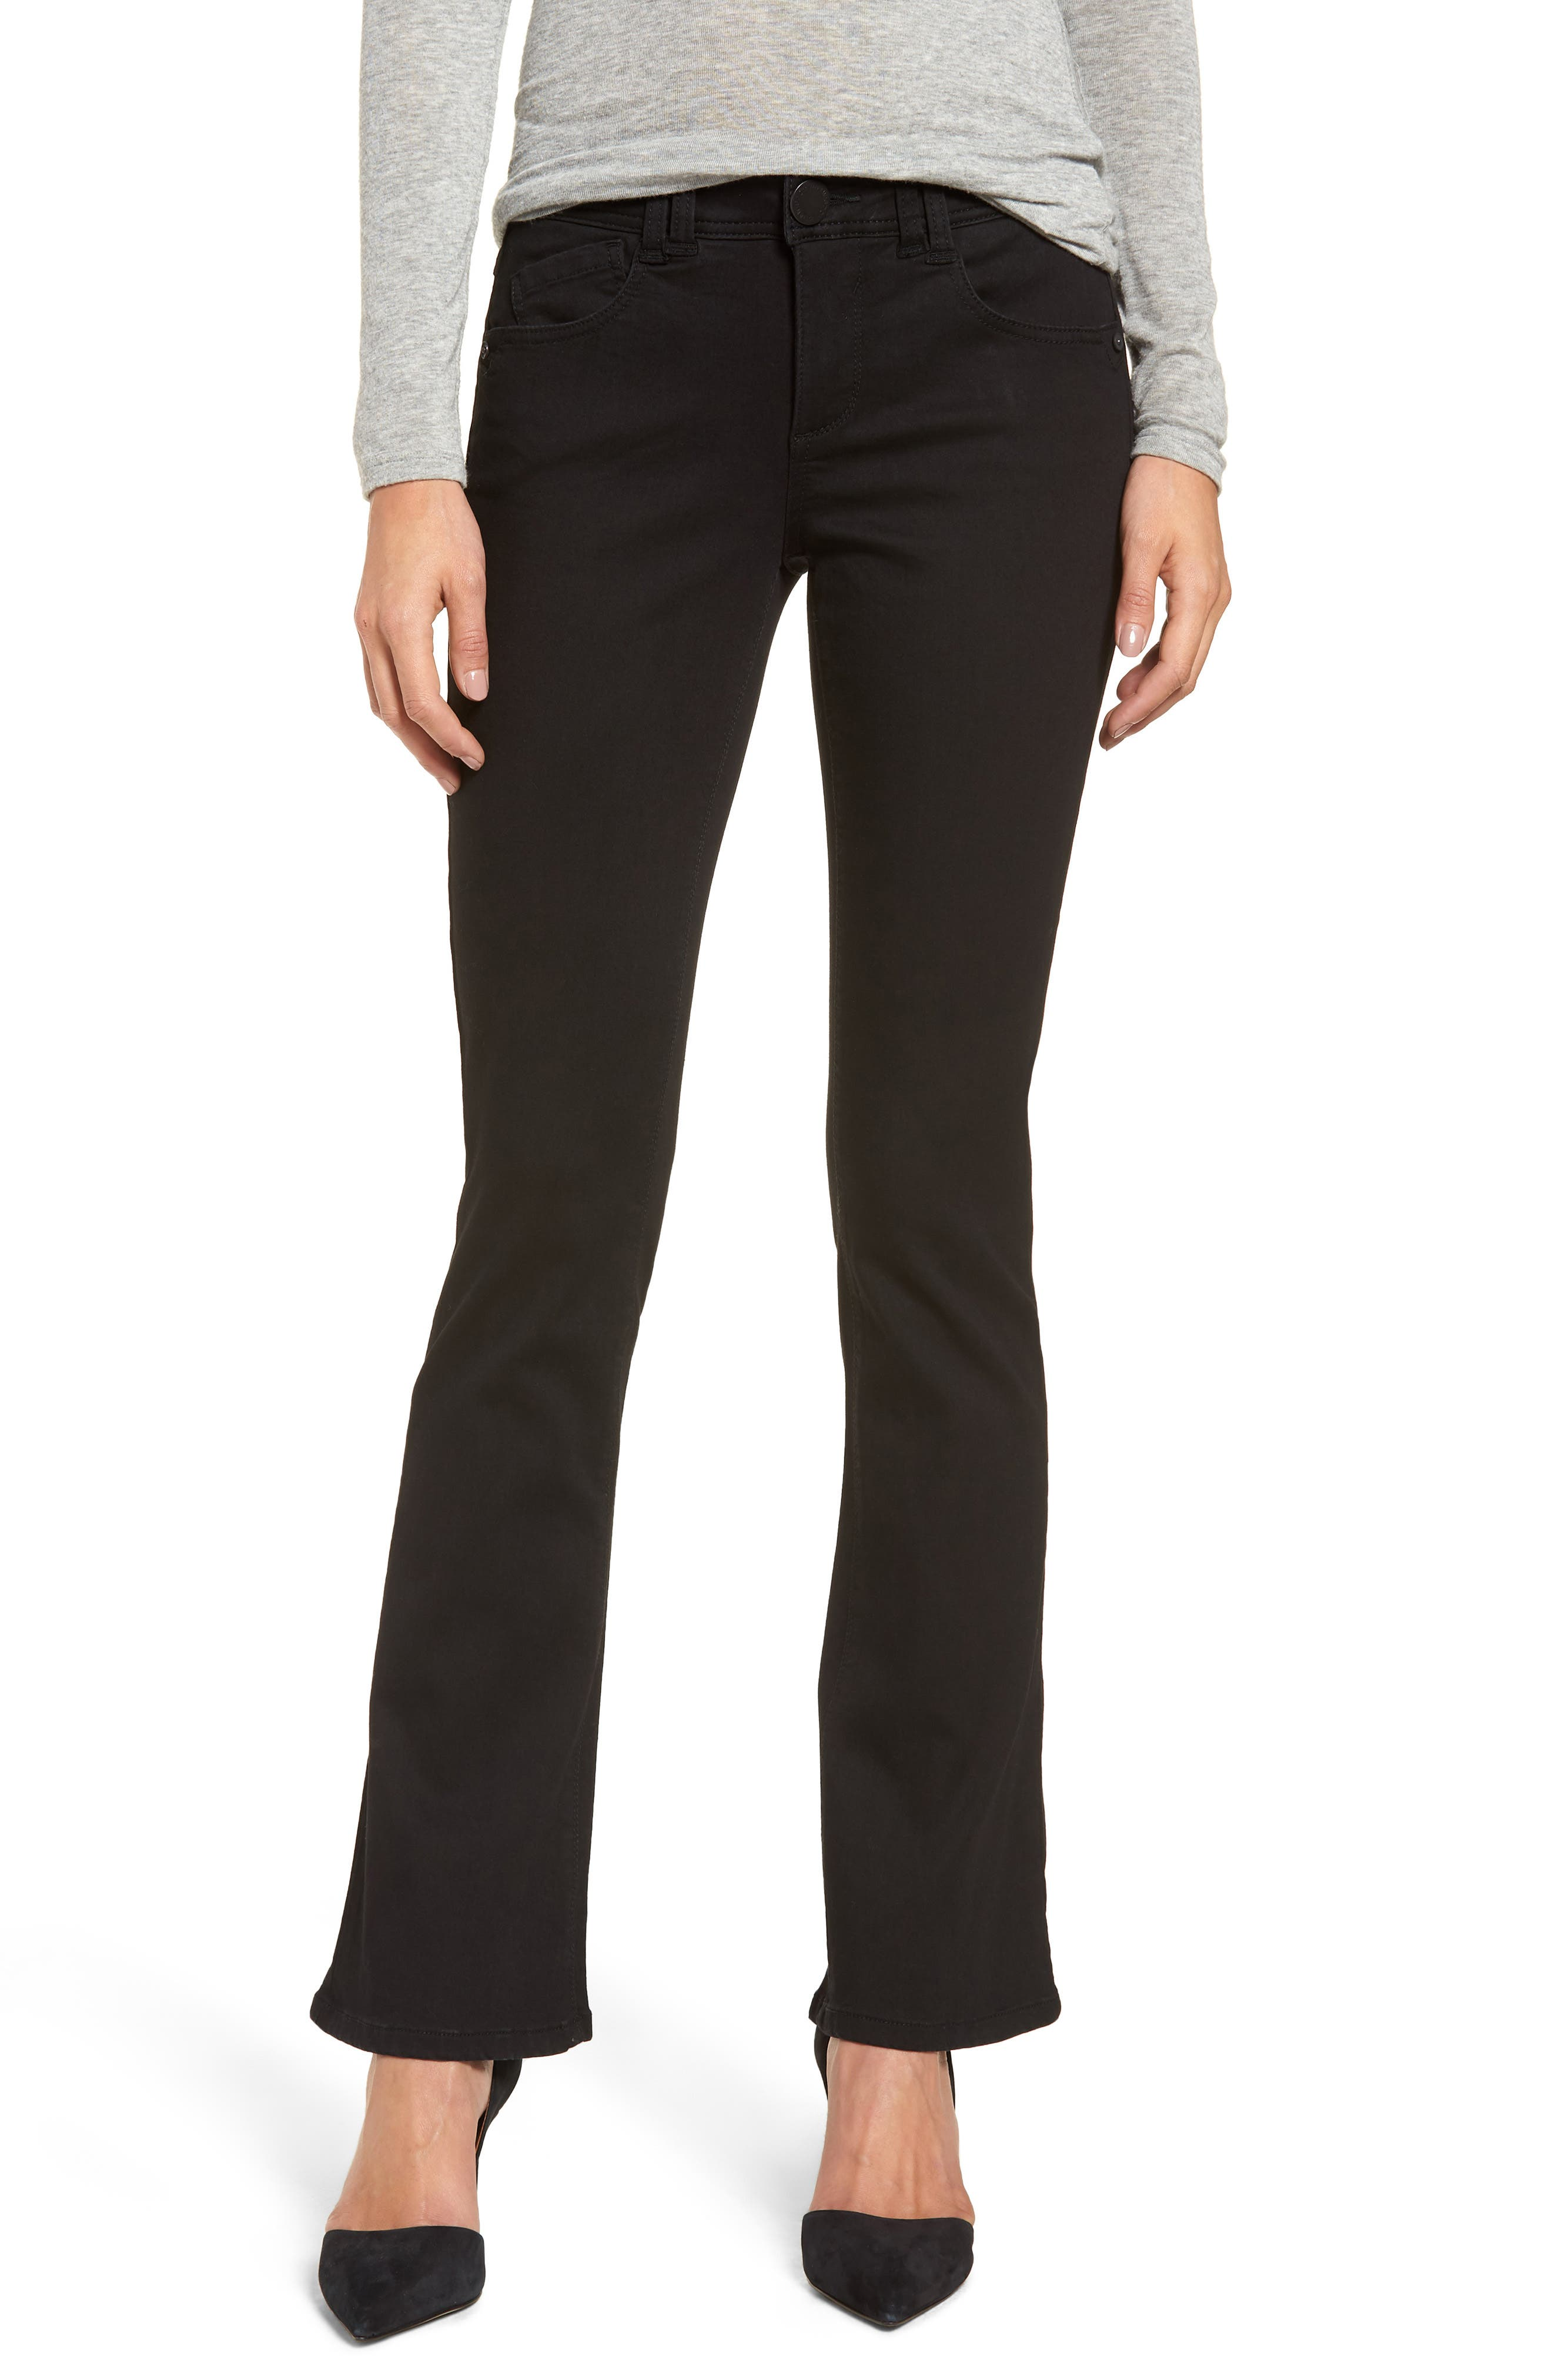 WIT & WISDOM, Ab-solution Itty Bitty Bootcut Jeans, Main thumbnail 1, color, BLACK